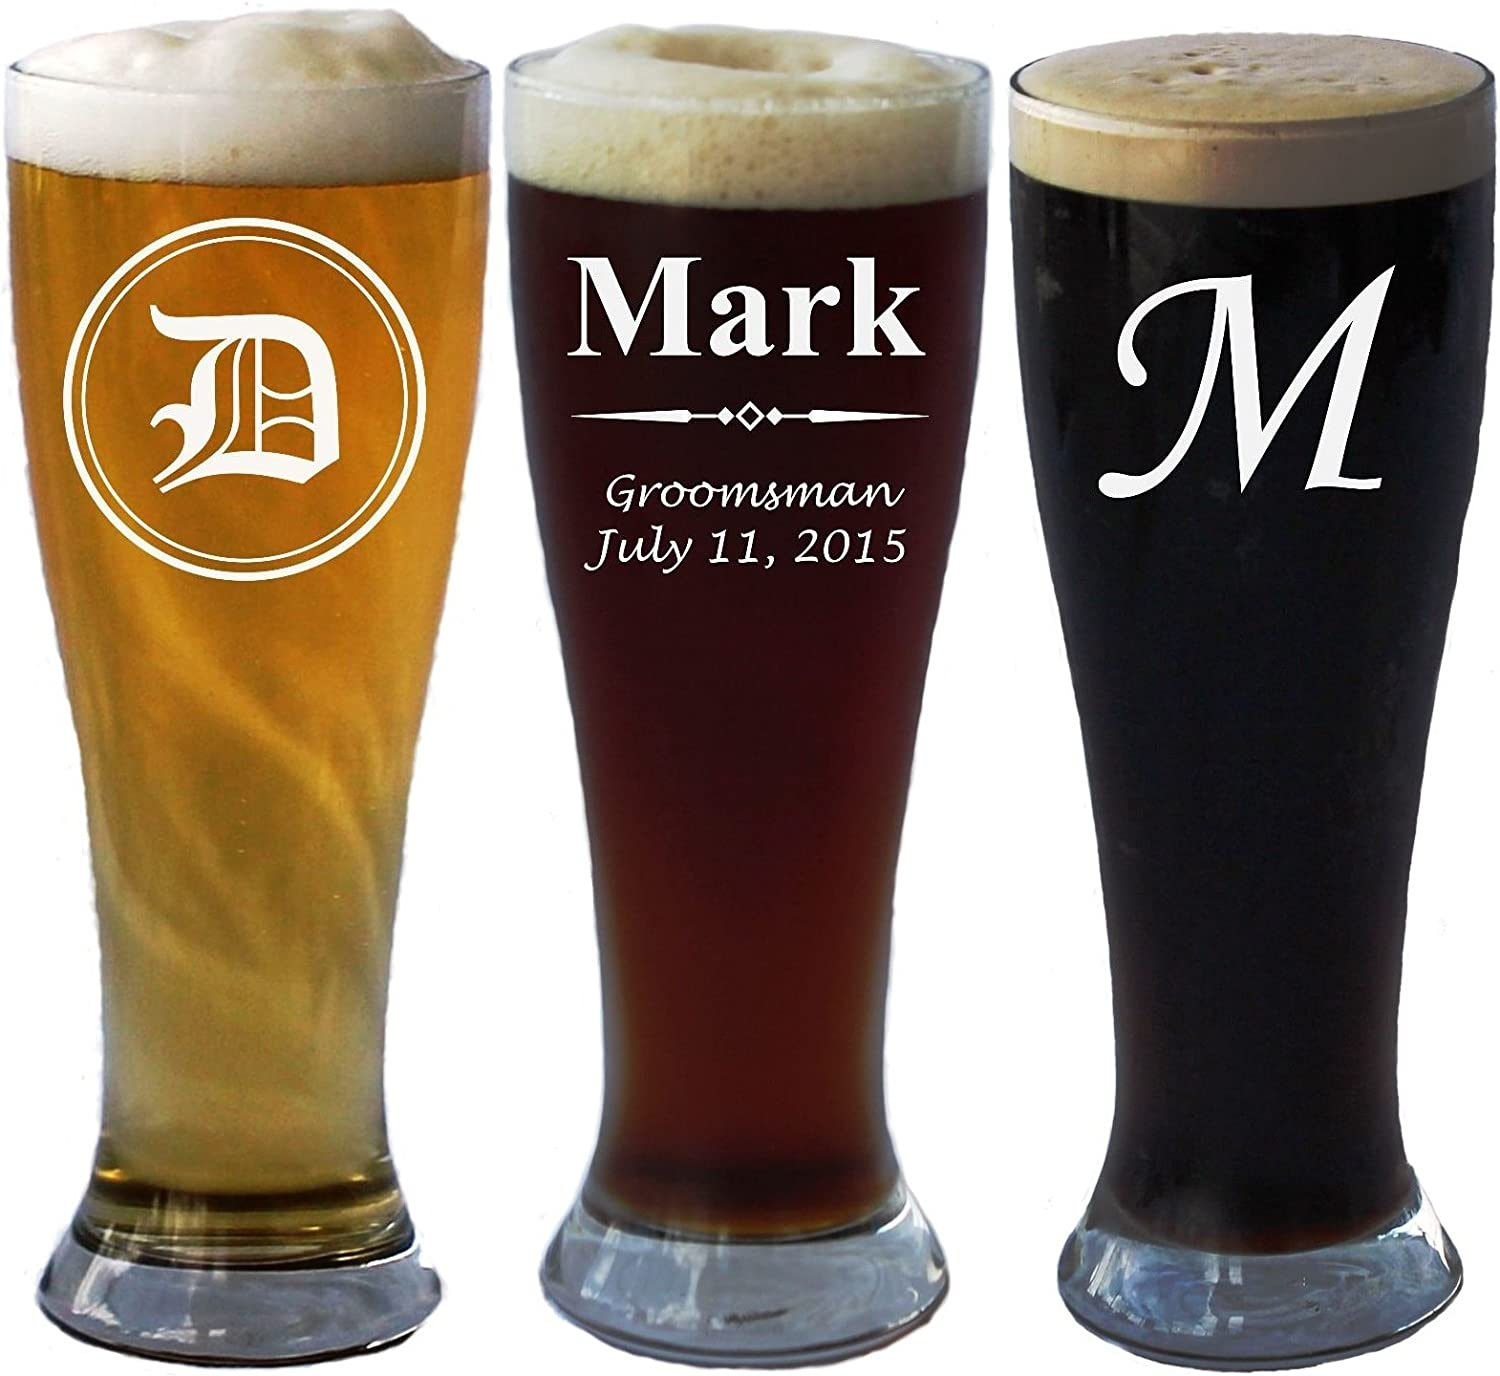 Amazon Com Personalized Pilsner Beer Glass 16 Oz Wedding Party Groomsmen Father S Day Gifts Custom Engraved Monogram Drinkware Glassware Barware Etched For Free Beer Glasses